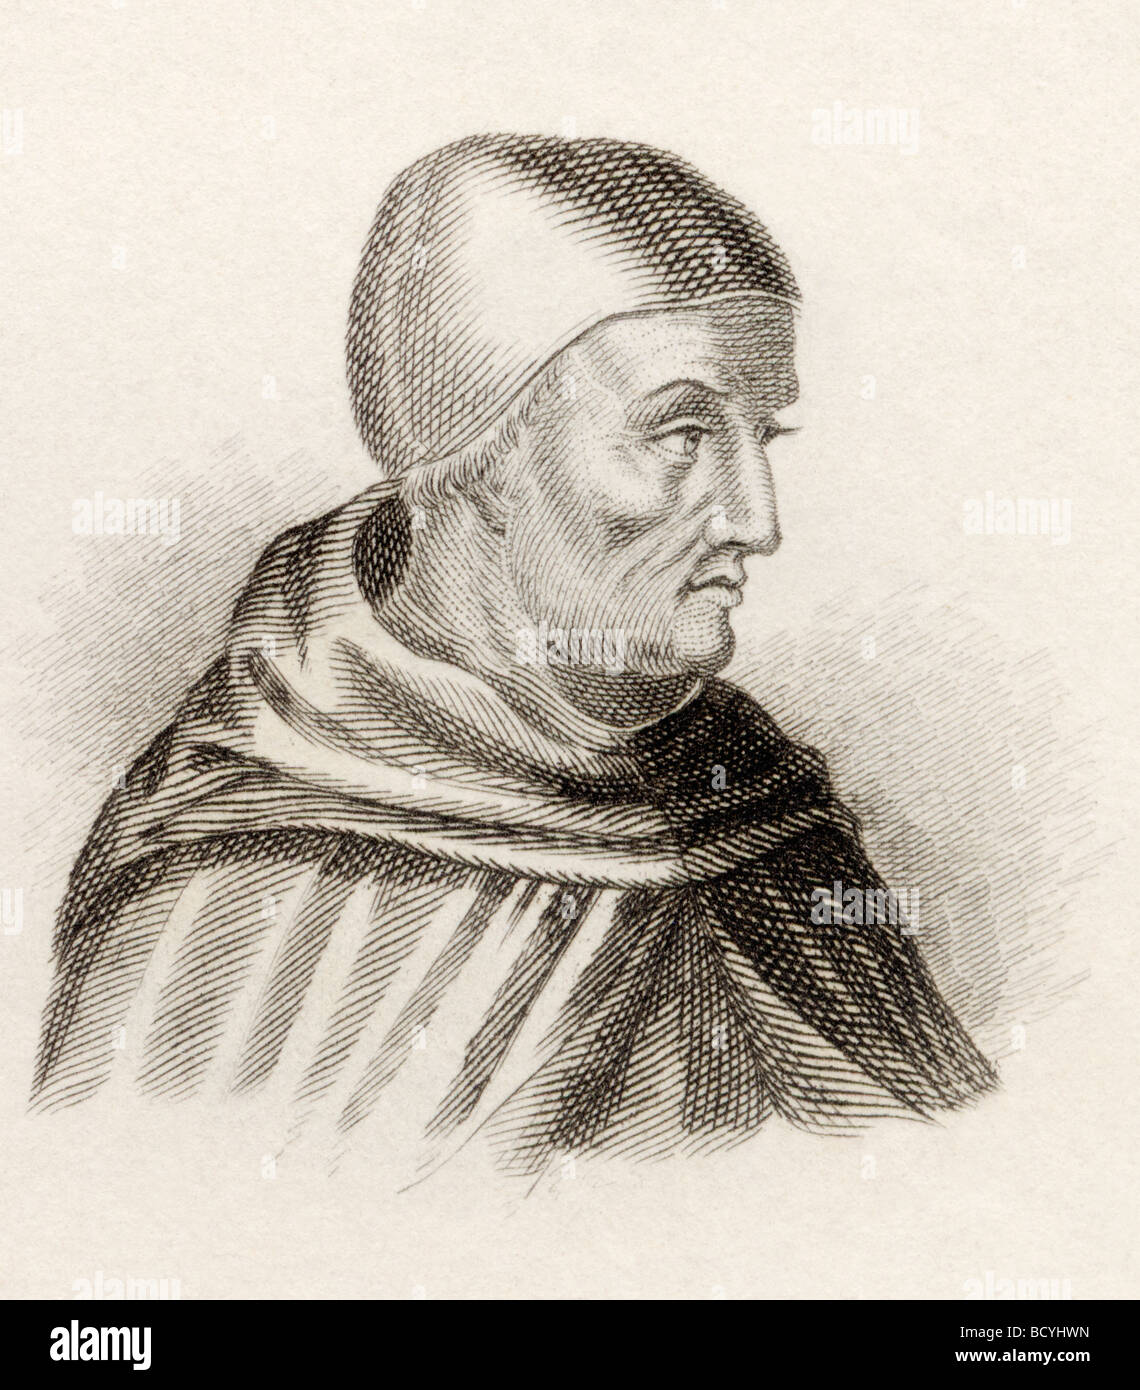 Saint Albertus Magnus born between 1193 and 1206 died 1280.  Also known as Saint Albert the Great, - Stock Image